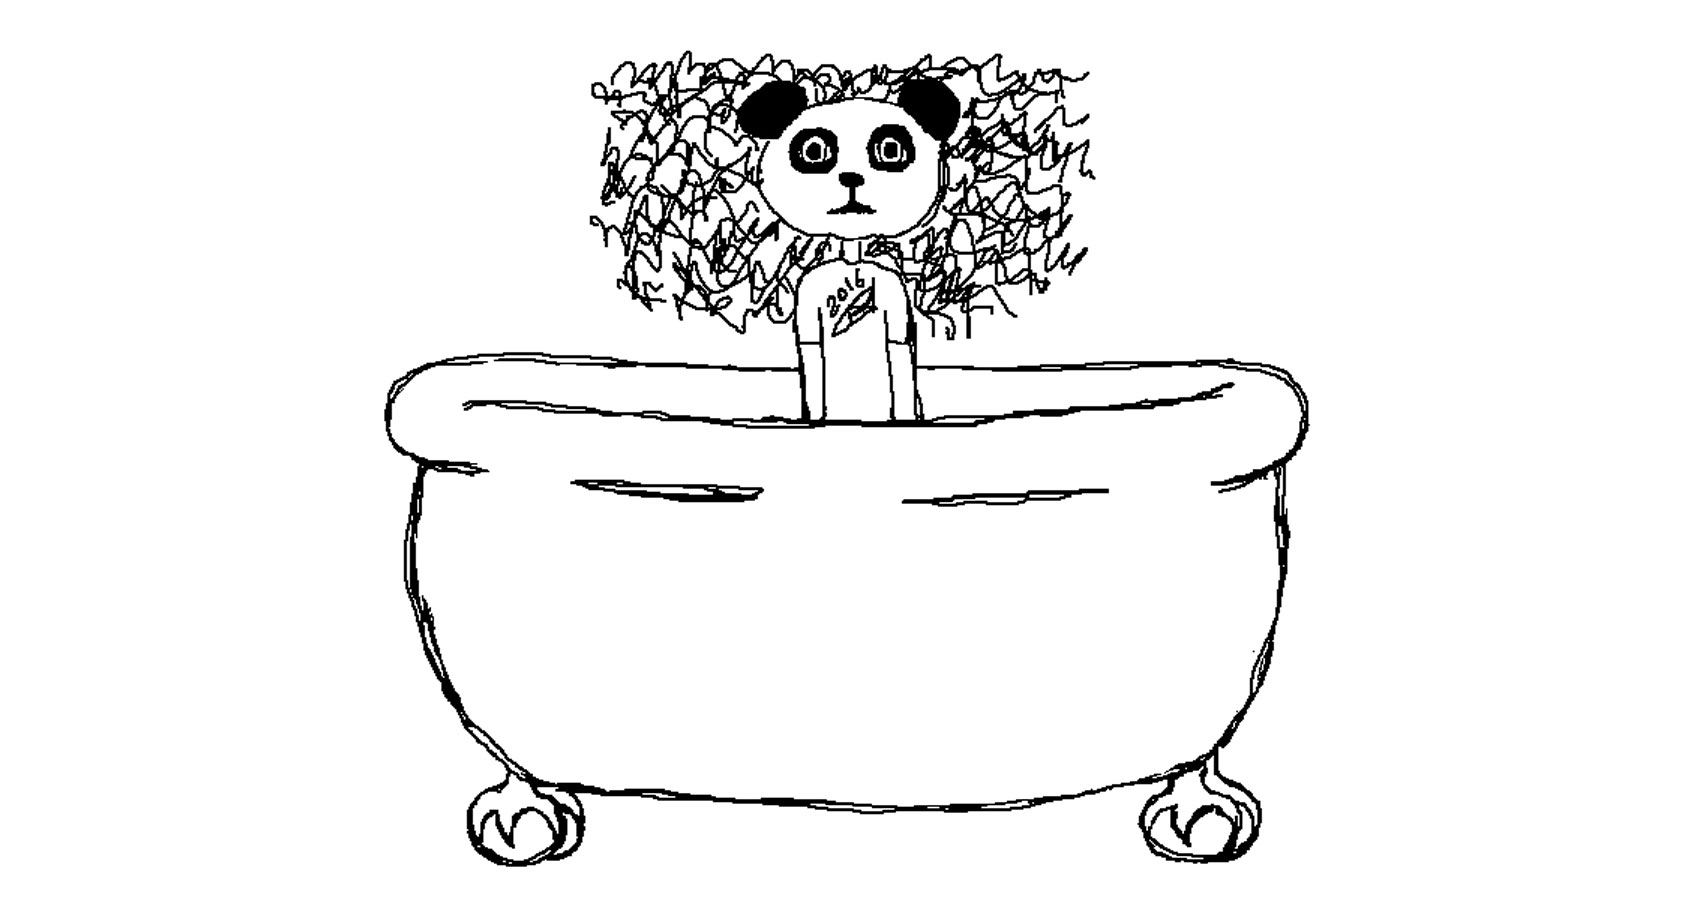 Giant Bathtub Panda Mask by Robyn MacKinnon at Spillwords.com